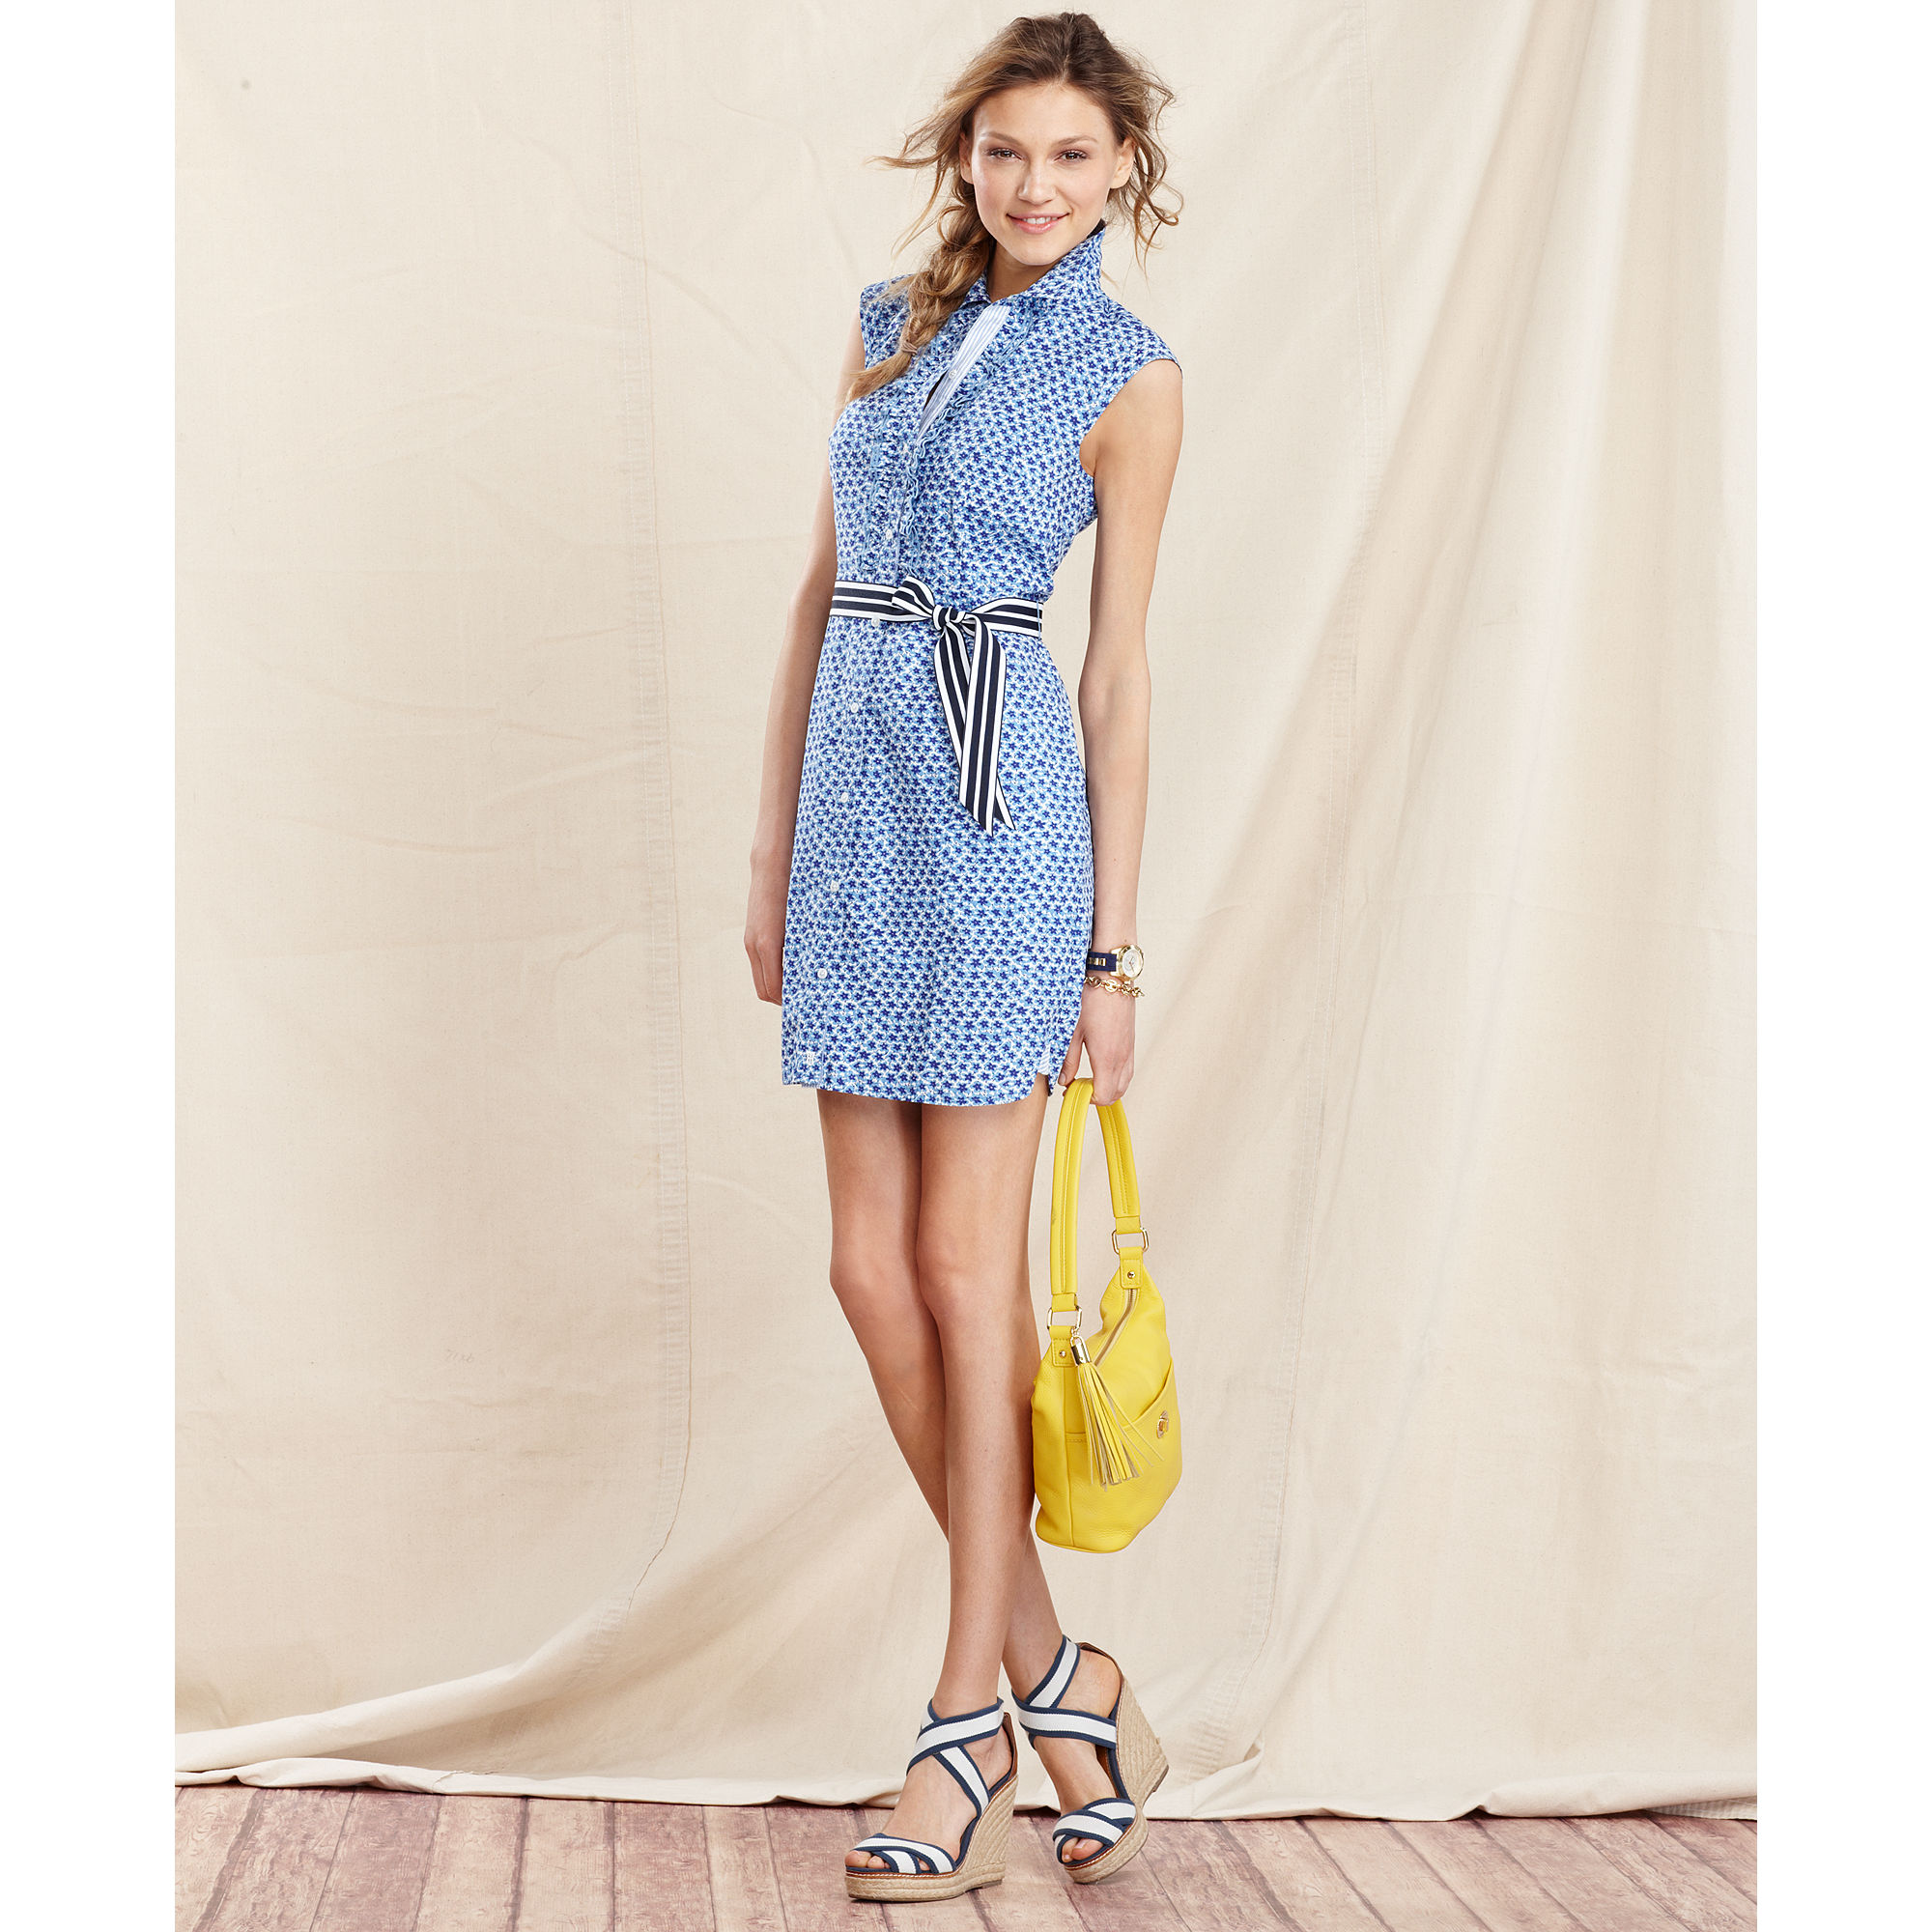 Lyst - Tommy Hilfiger Sleeveless Belted Shirt-dress in Blue